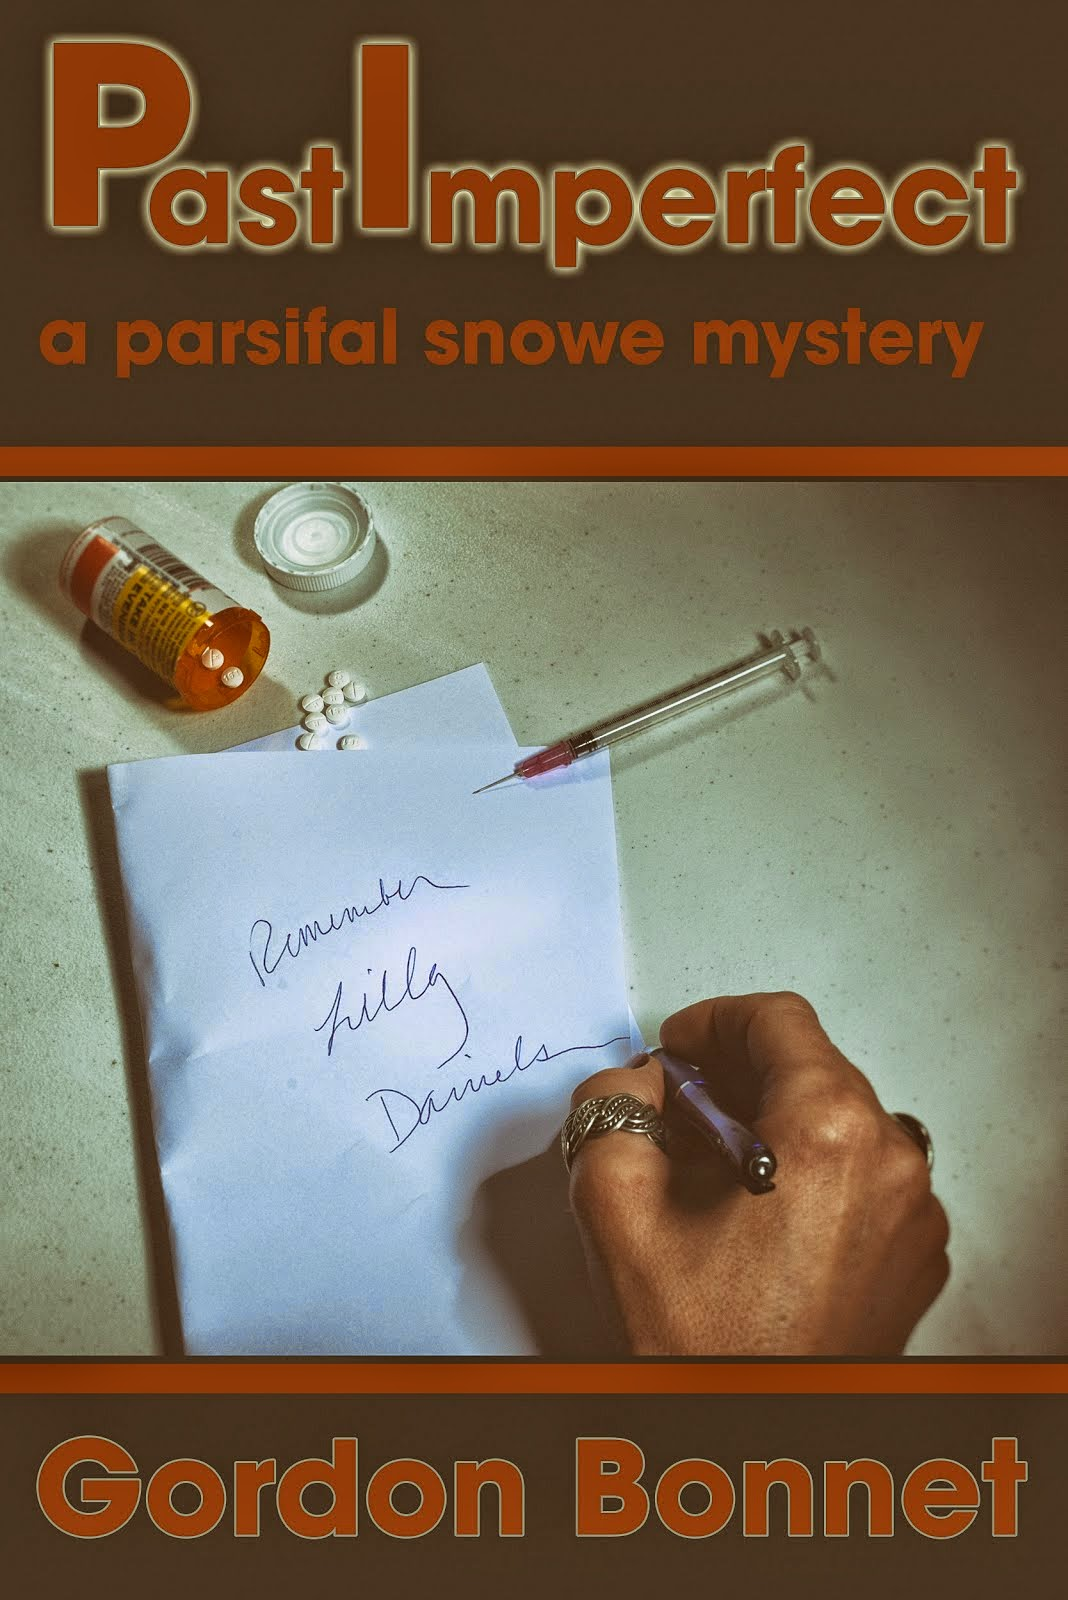 The Parsifal Snowe Mysteries